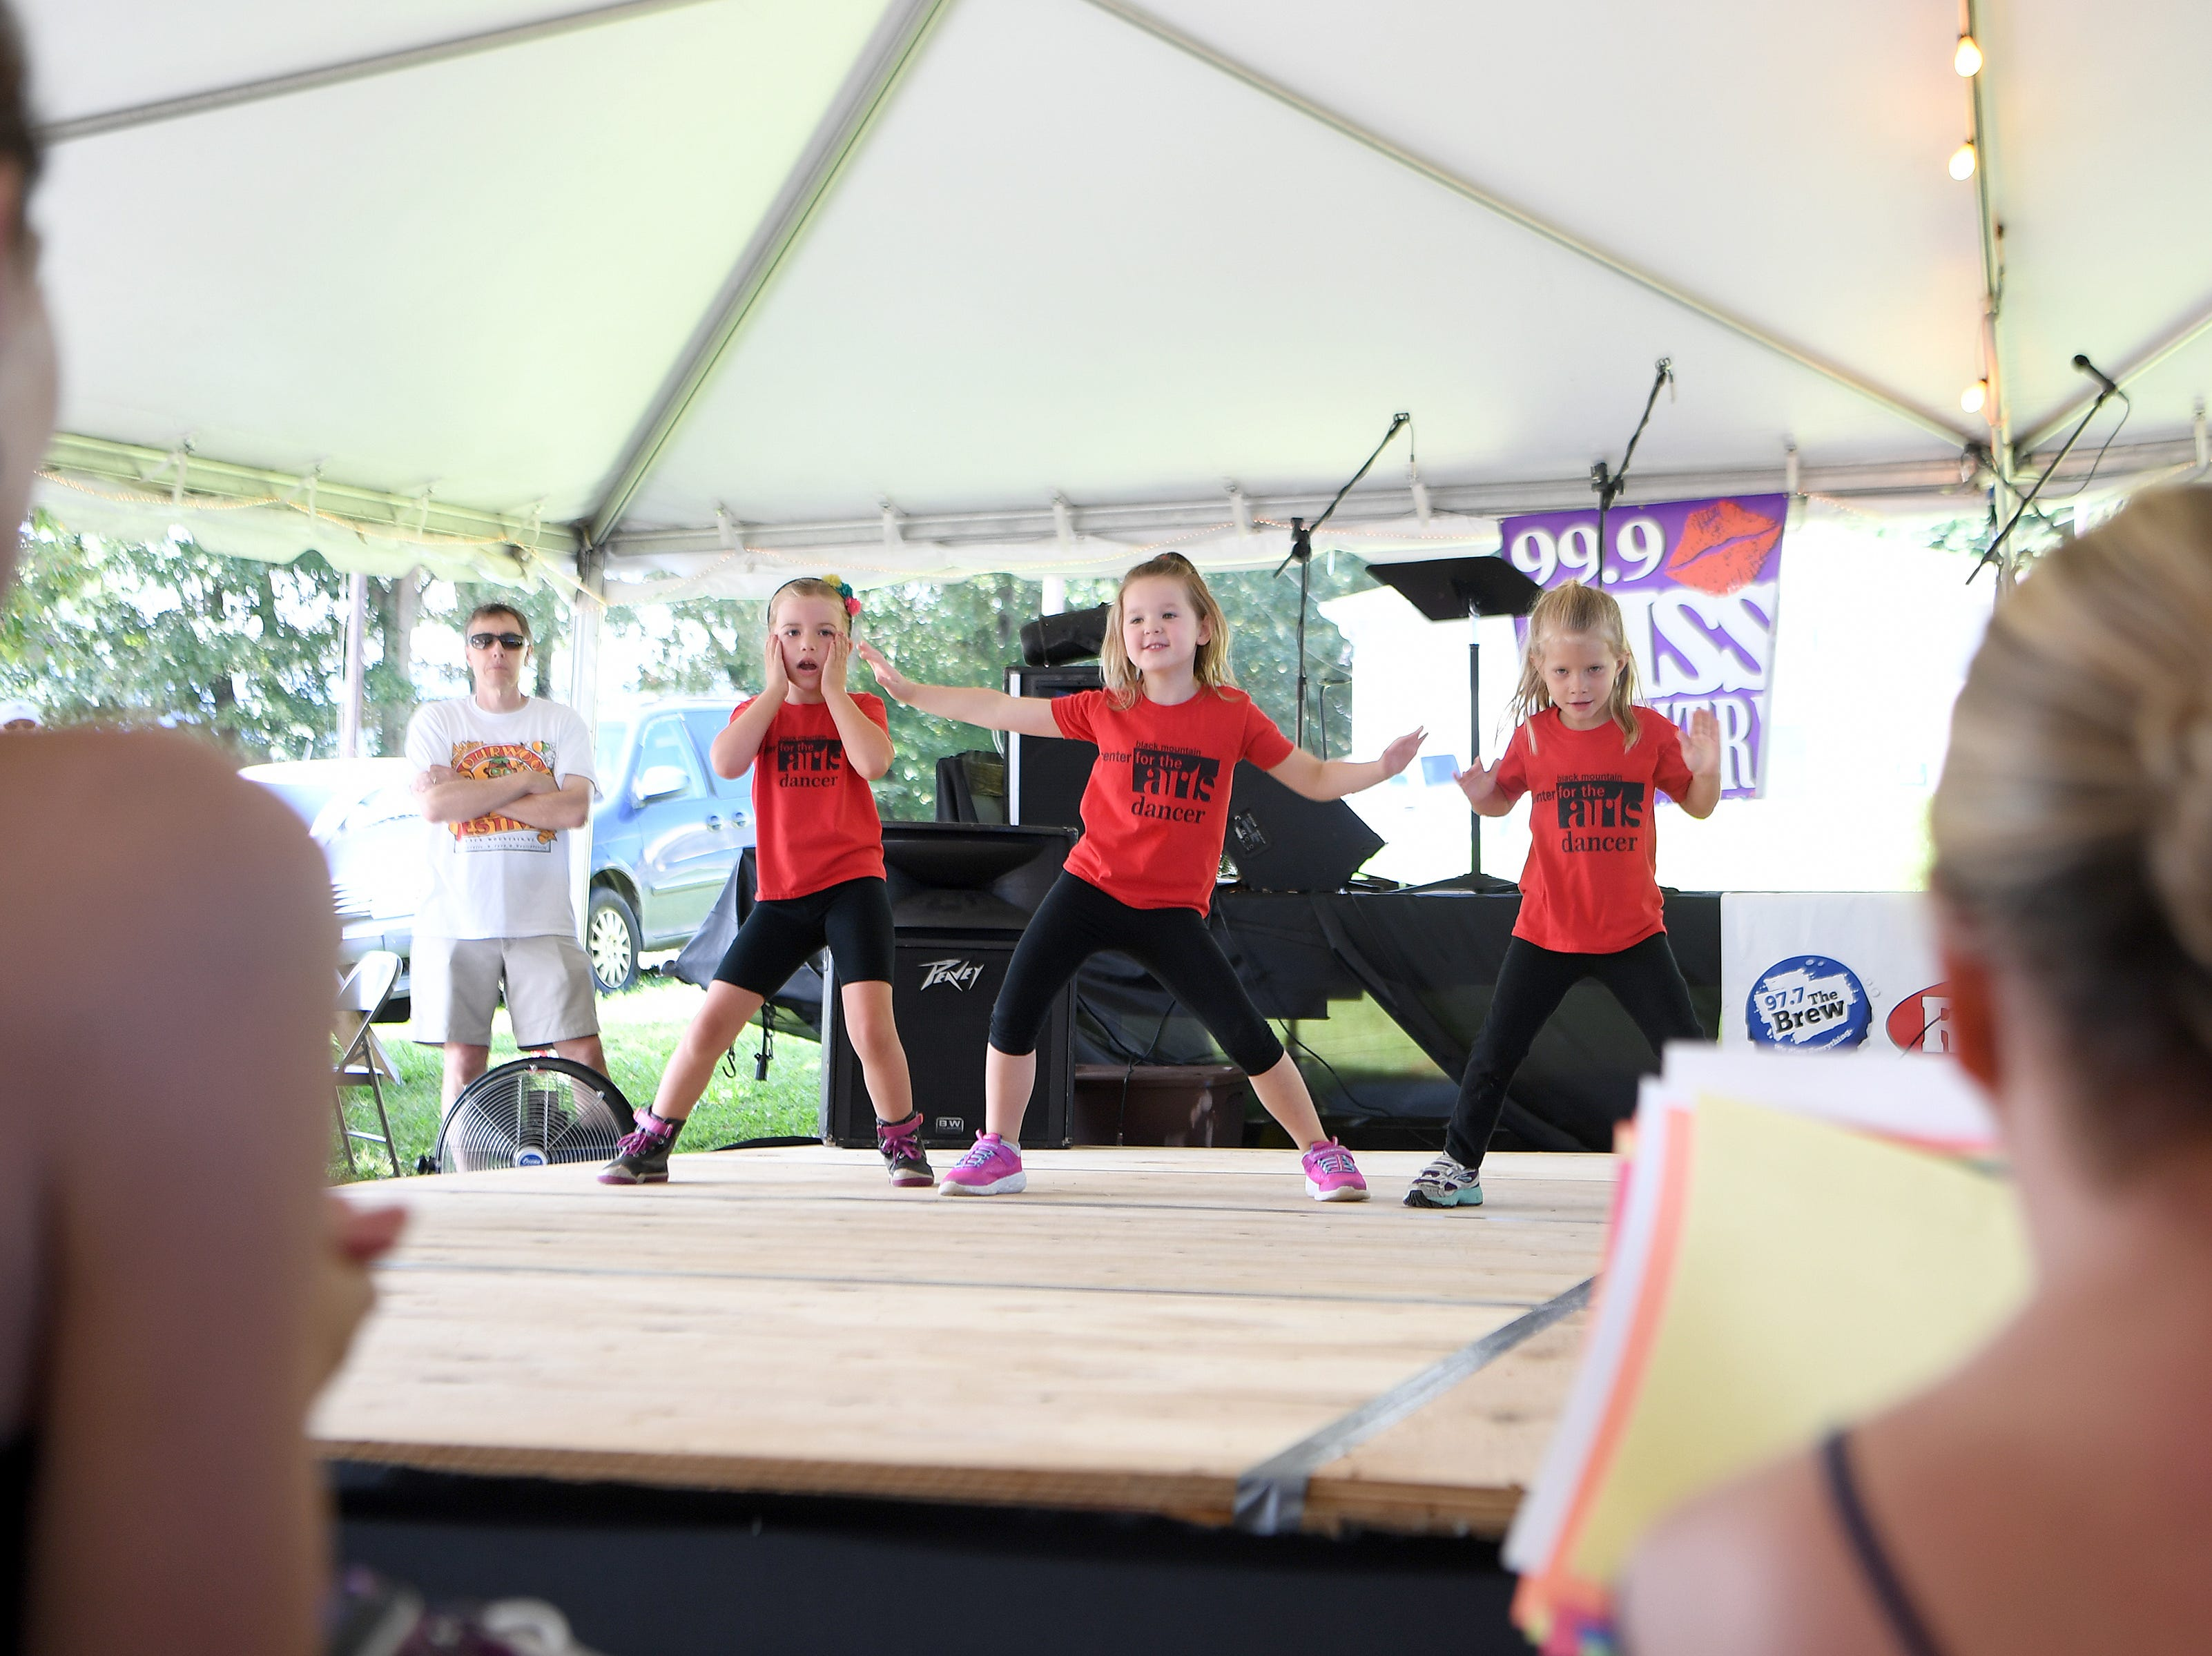 Young dancers from the Black Mountain Center for the Arts, Ember Boyd, 5, left, Vivian Pickett, 5, center, and Adelaide Christopher, 4, are directed by Amy Maze as they perform during the 41st annual Sourwood Festival in Black Mountain on Saturday, Aug. 11, 2018.